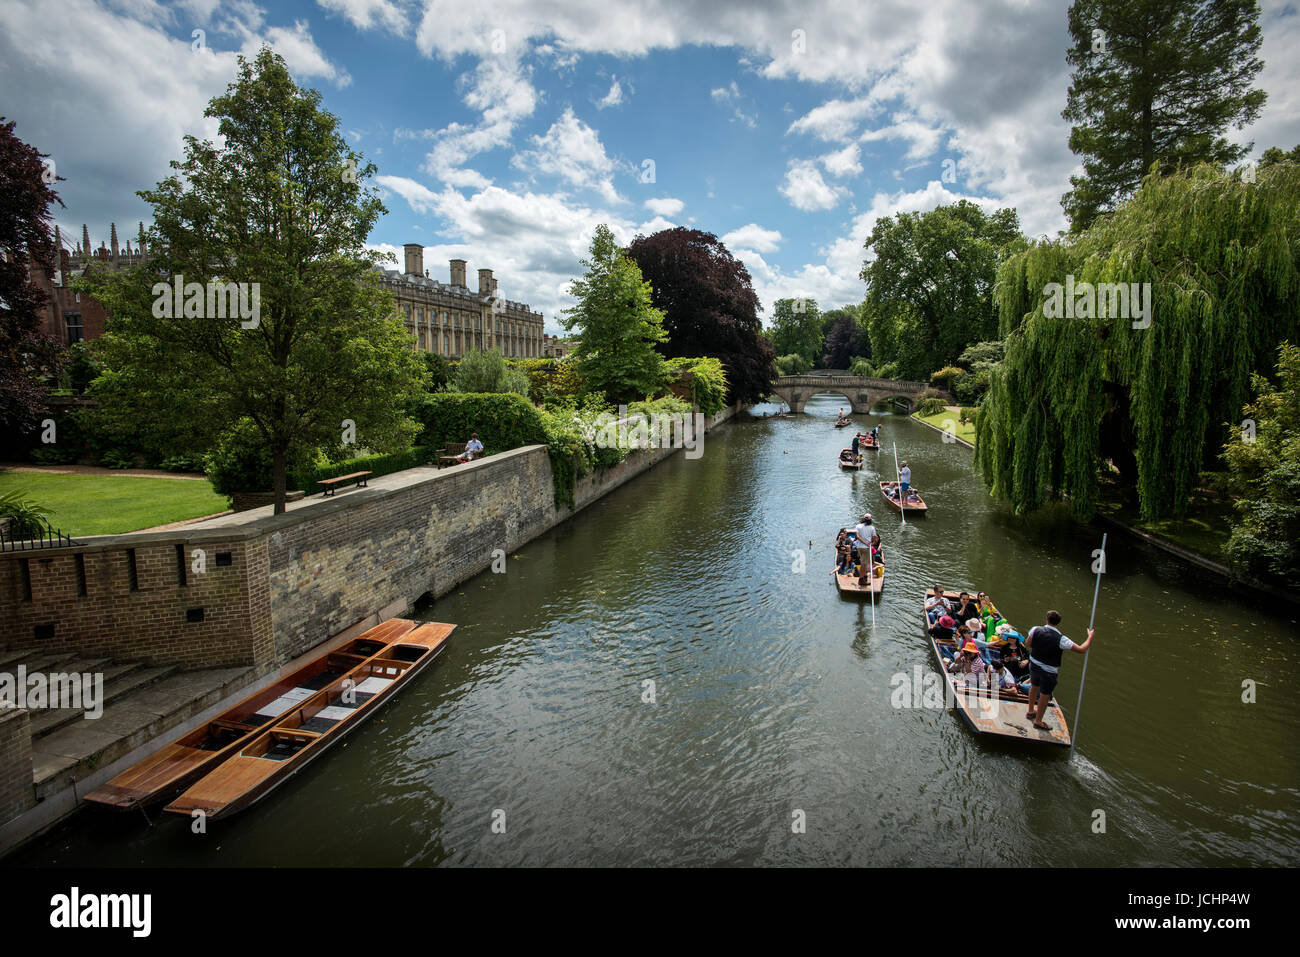 Cambridge, Cambridgeshire, England UK. Punting on the River Cam showing Clare College Bridge in Cambridge. June - Stock Image